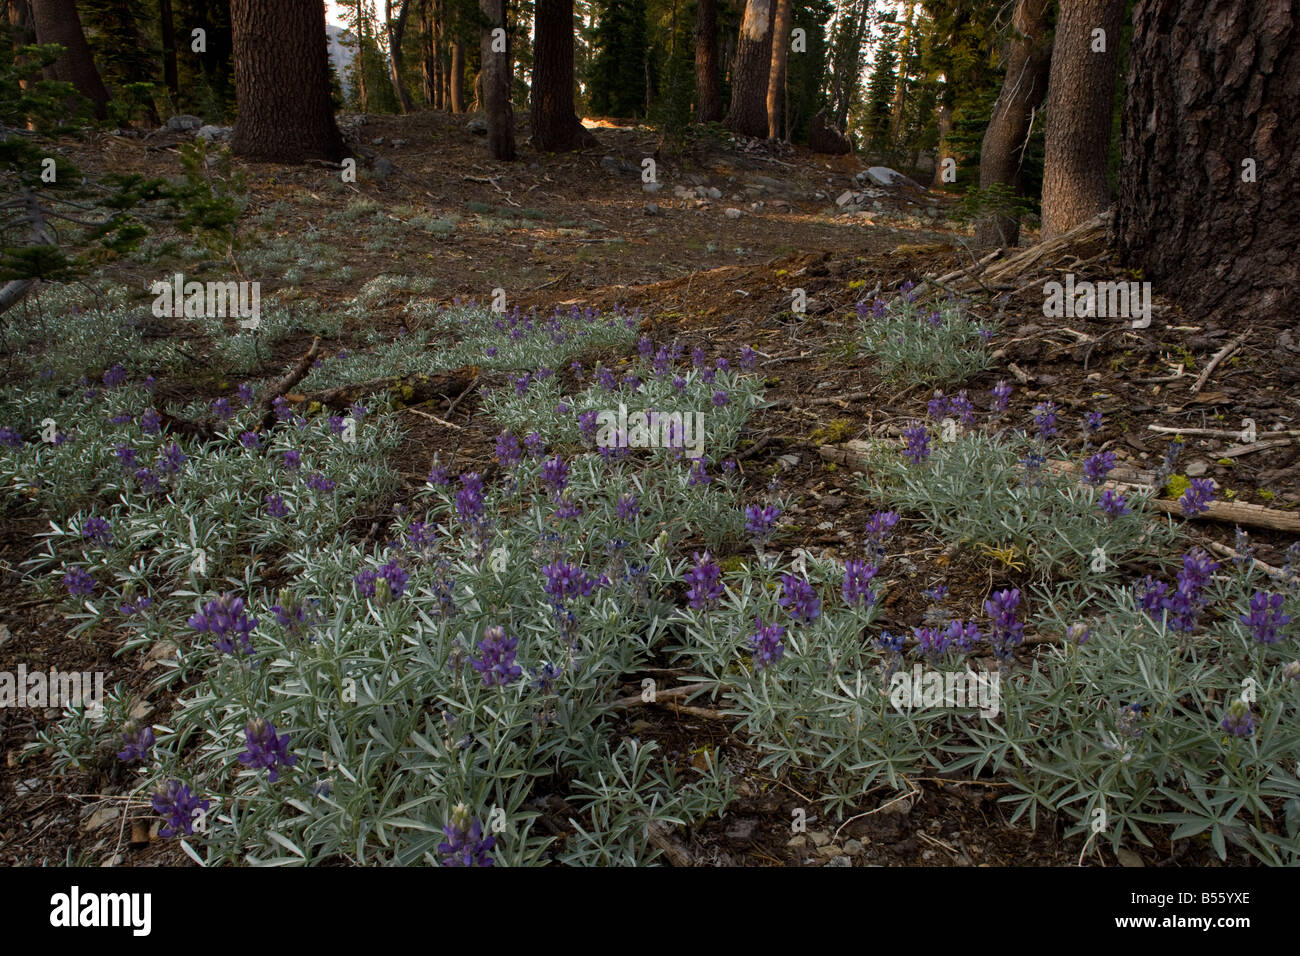 Satin Lupine Lupinus obtusifolius in flower in Fir Forest Mount Lassen California - Stock Image